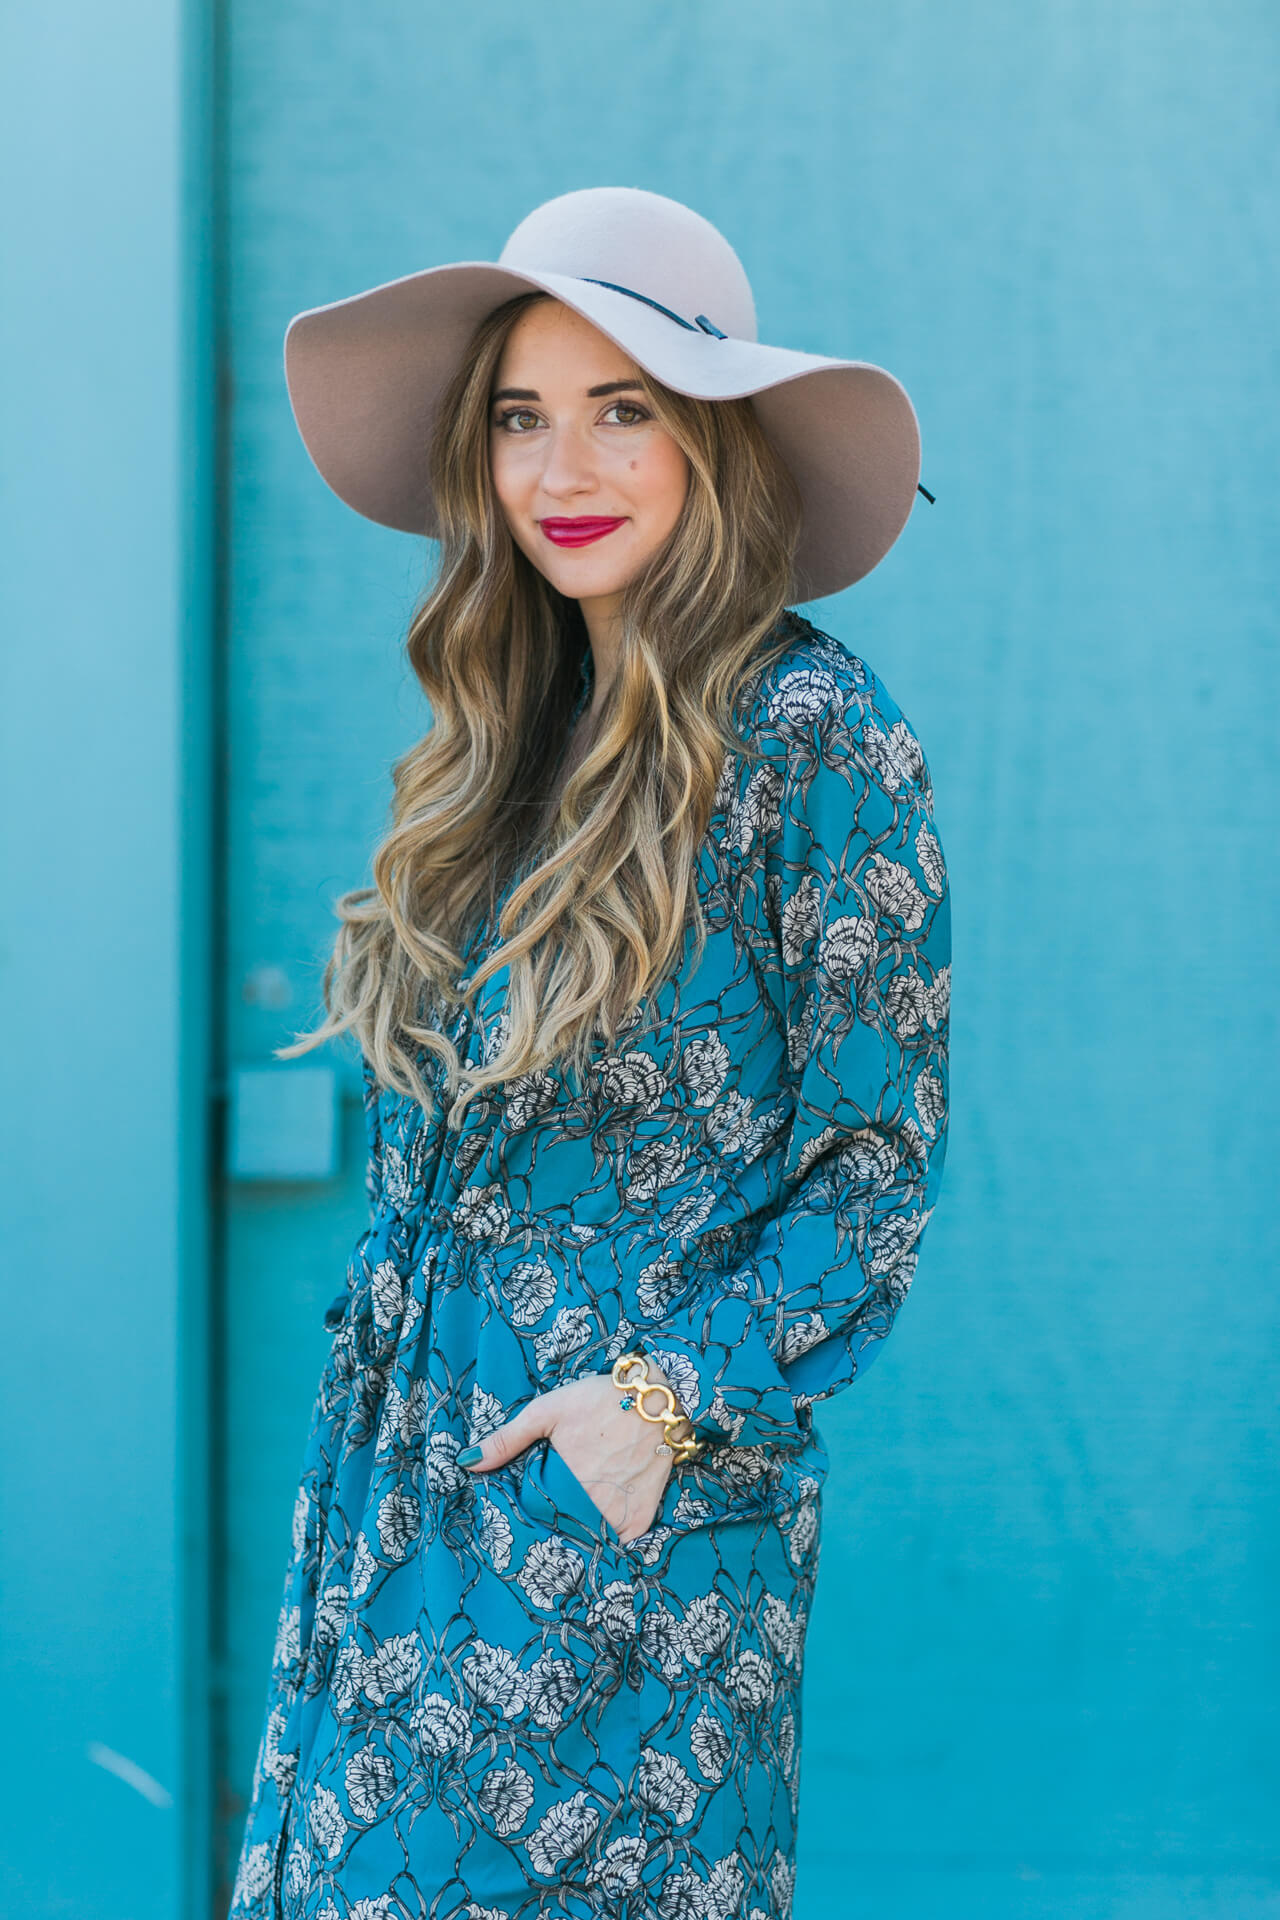 styling a printed shirtdress and hat for fall